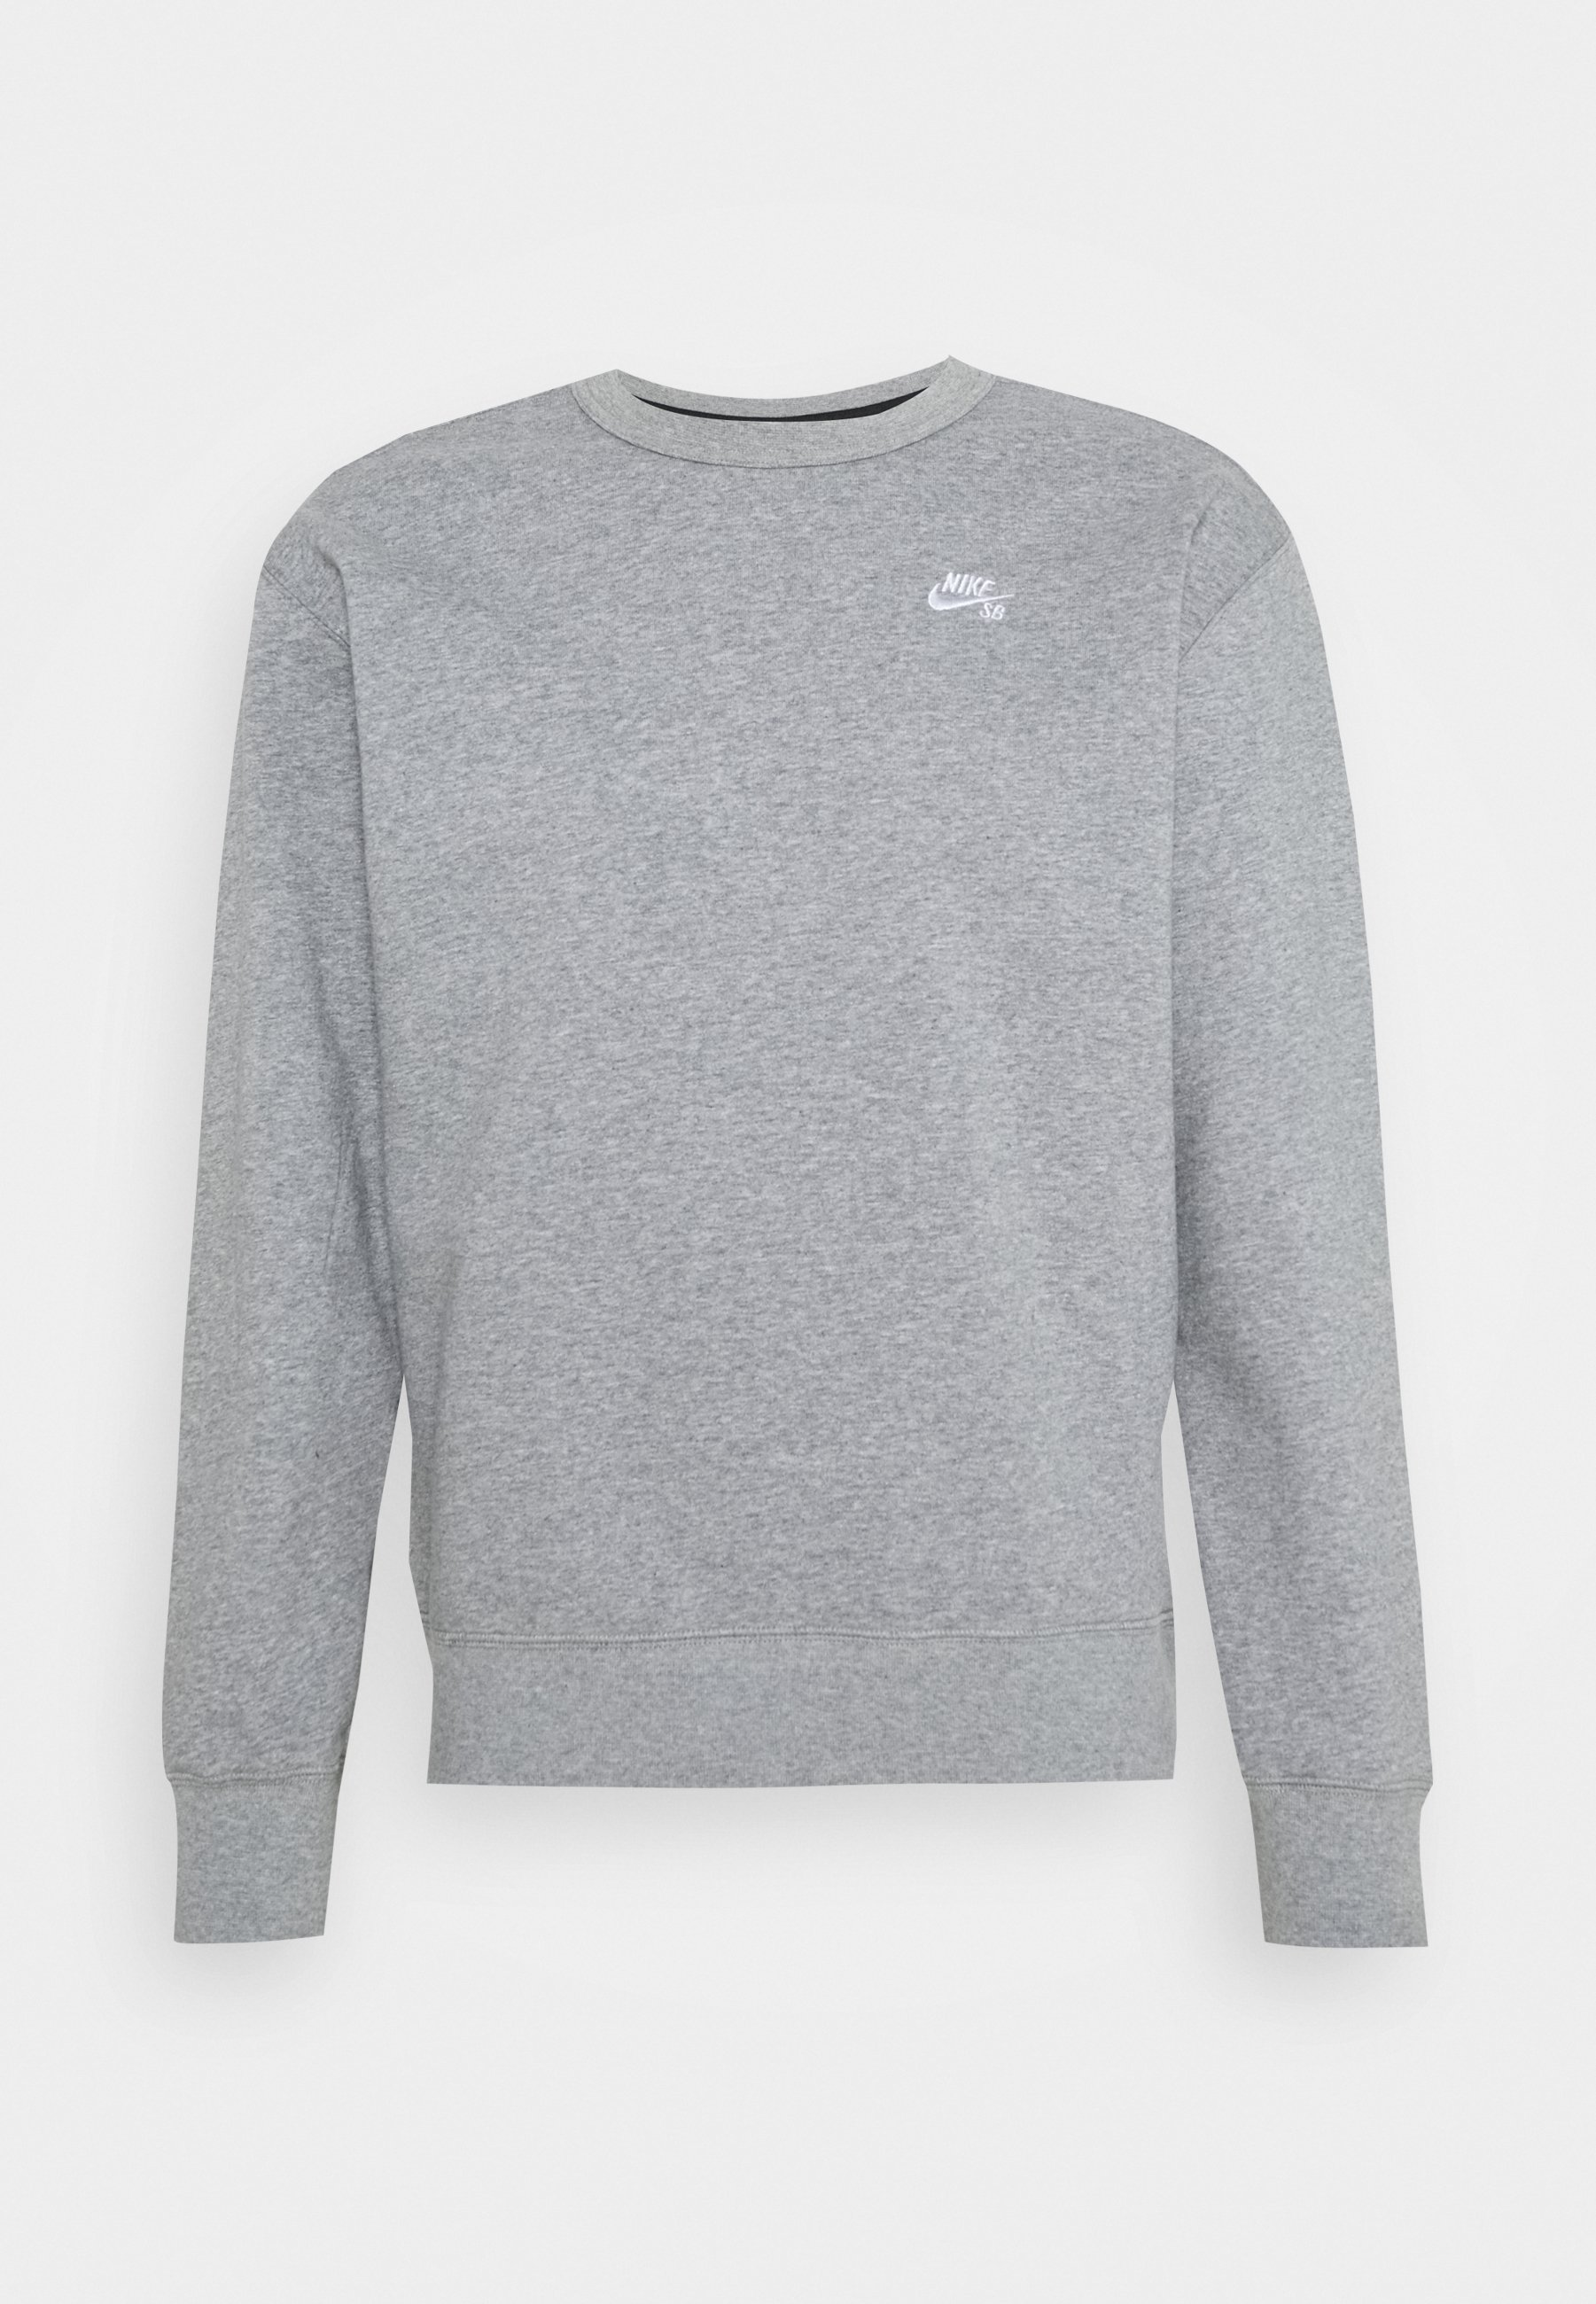 CREW Sweatshirt dark grey heatherwhite